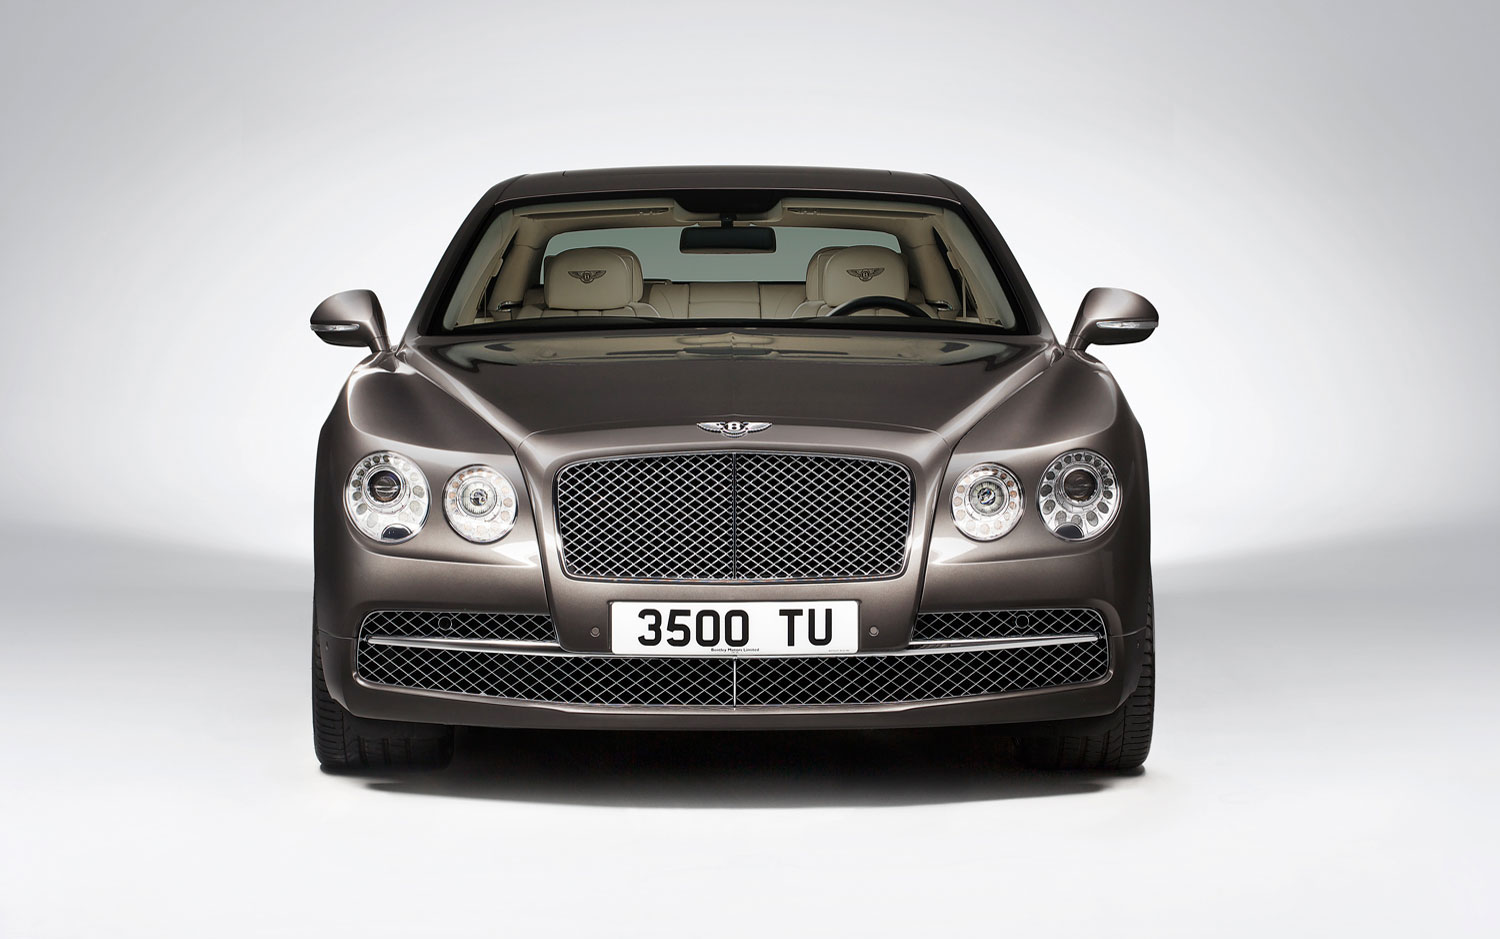 bentley magazine has models edition news meet subscription s spur flying car black the revealed new